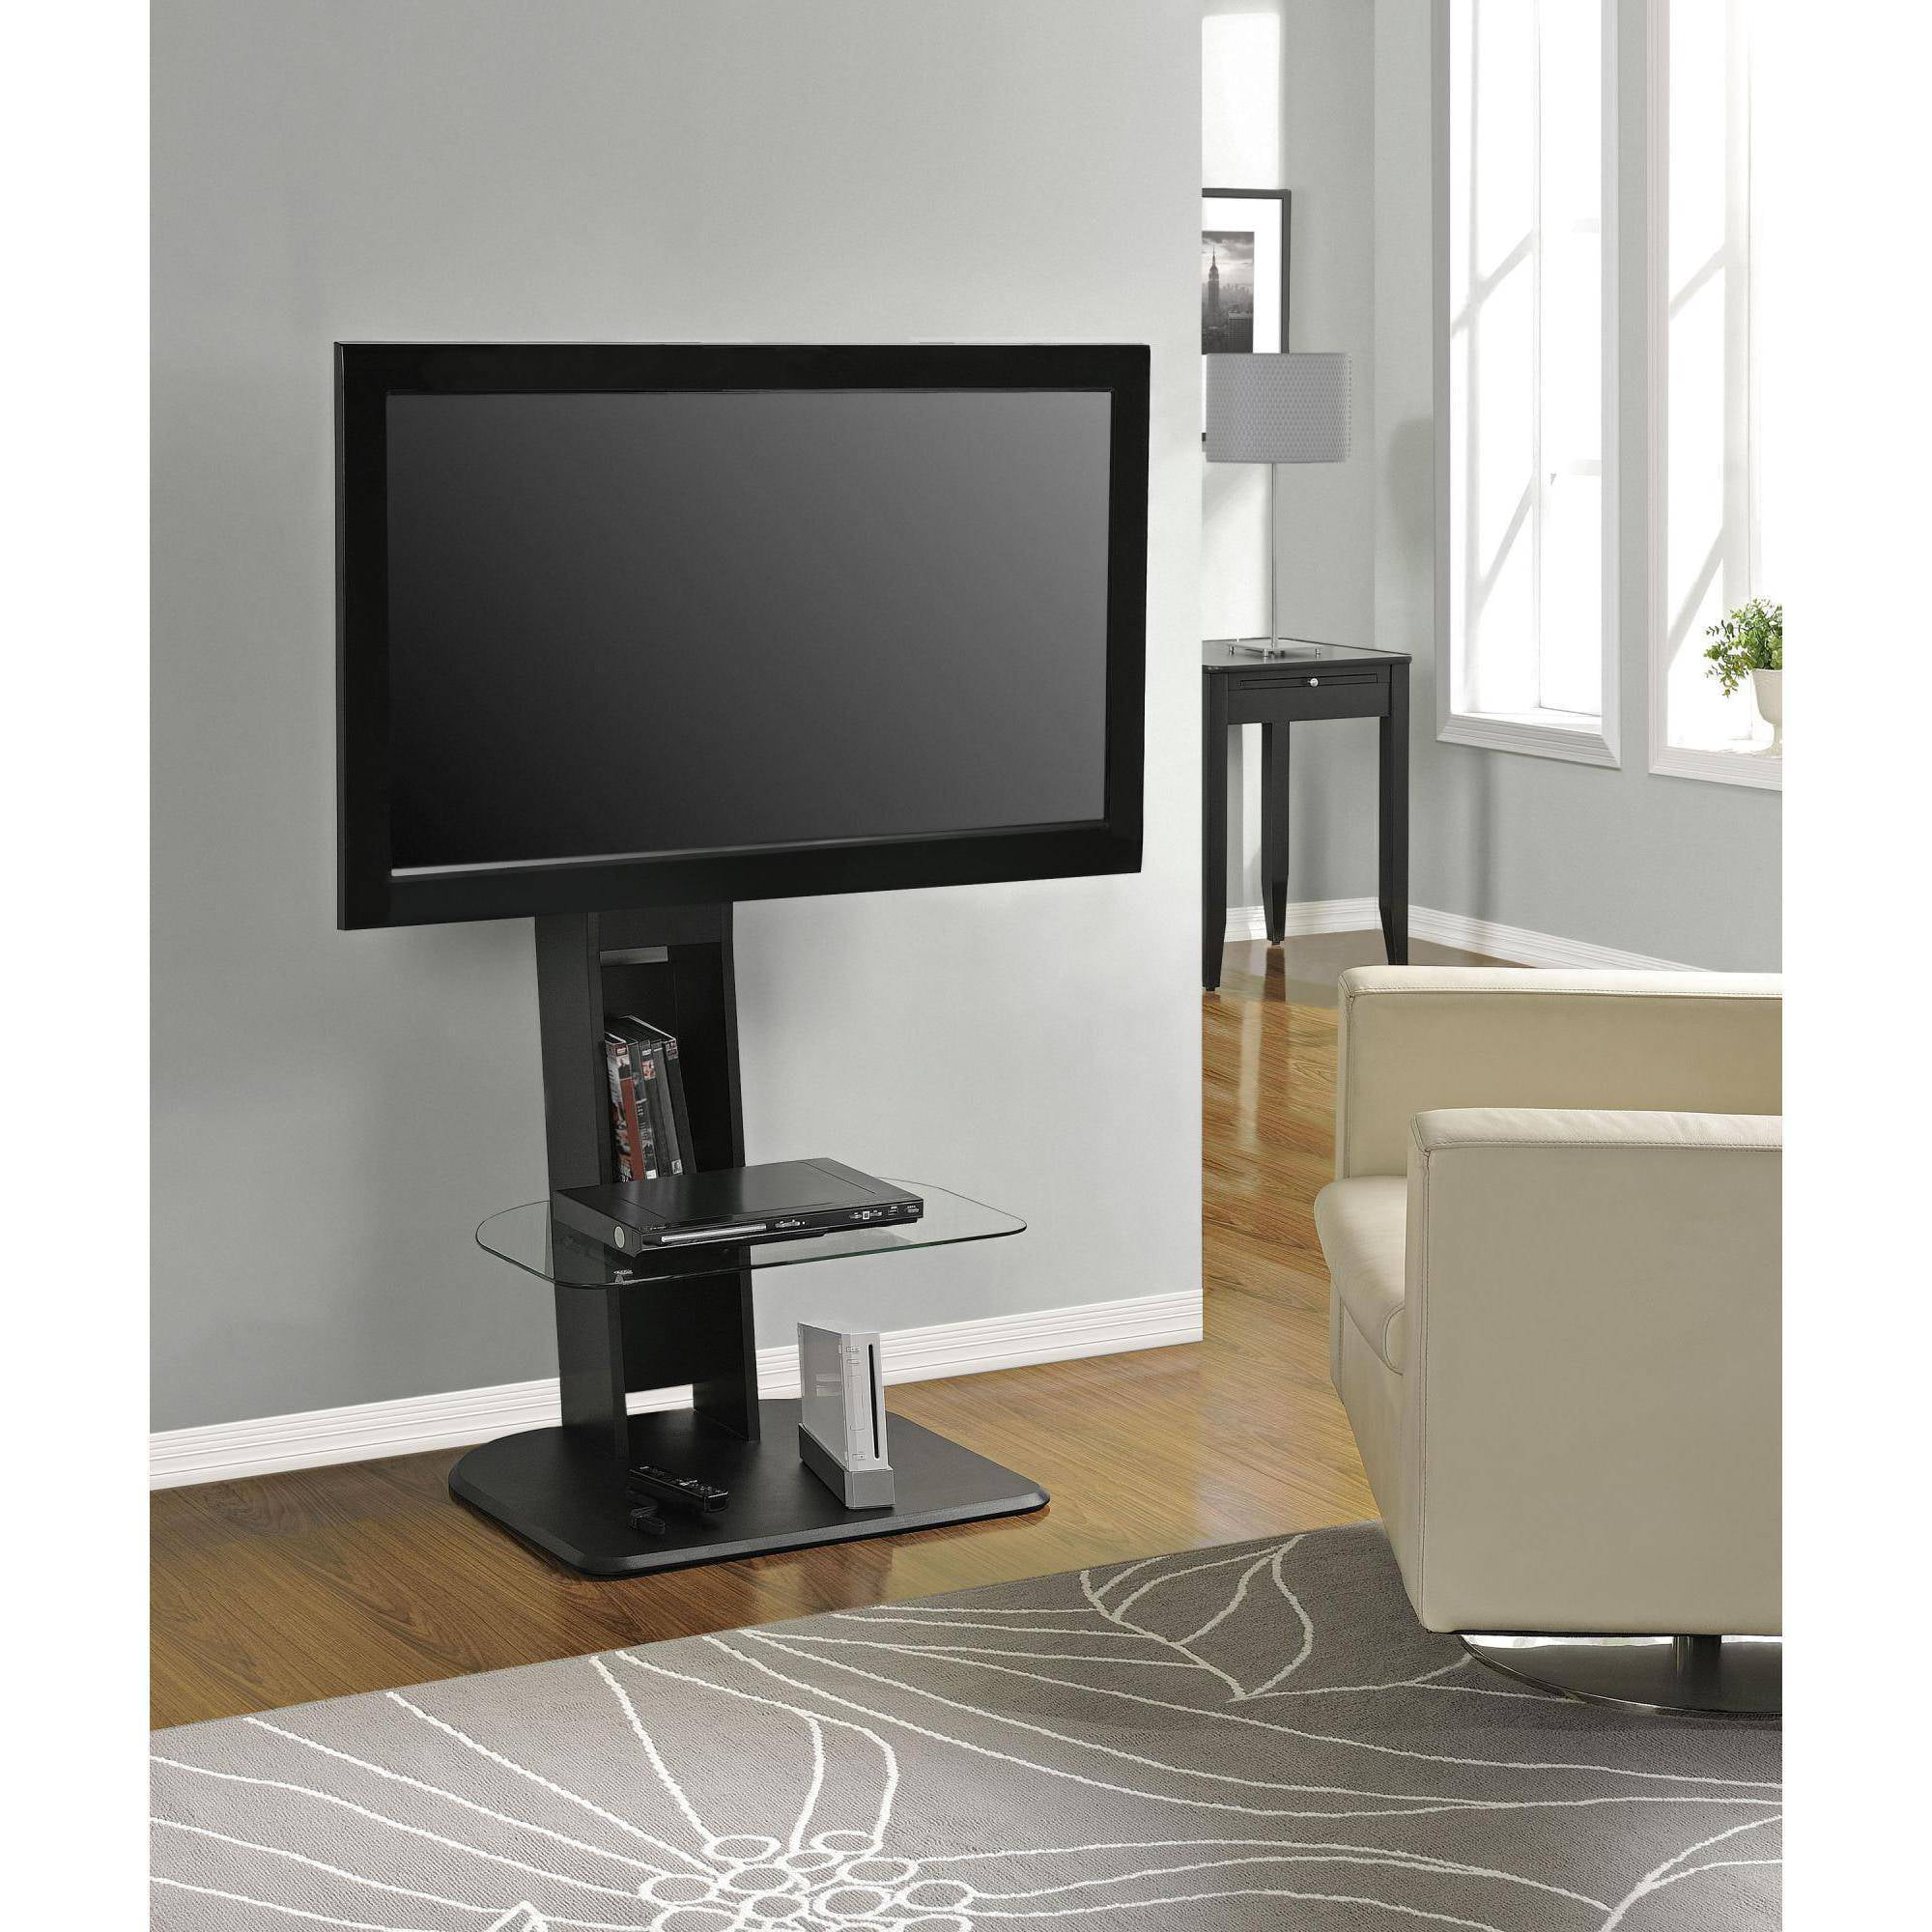 Jaxx Black/Grey Corner TV Stand for TVs up to 40\